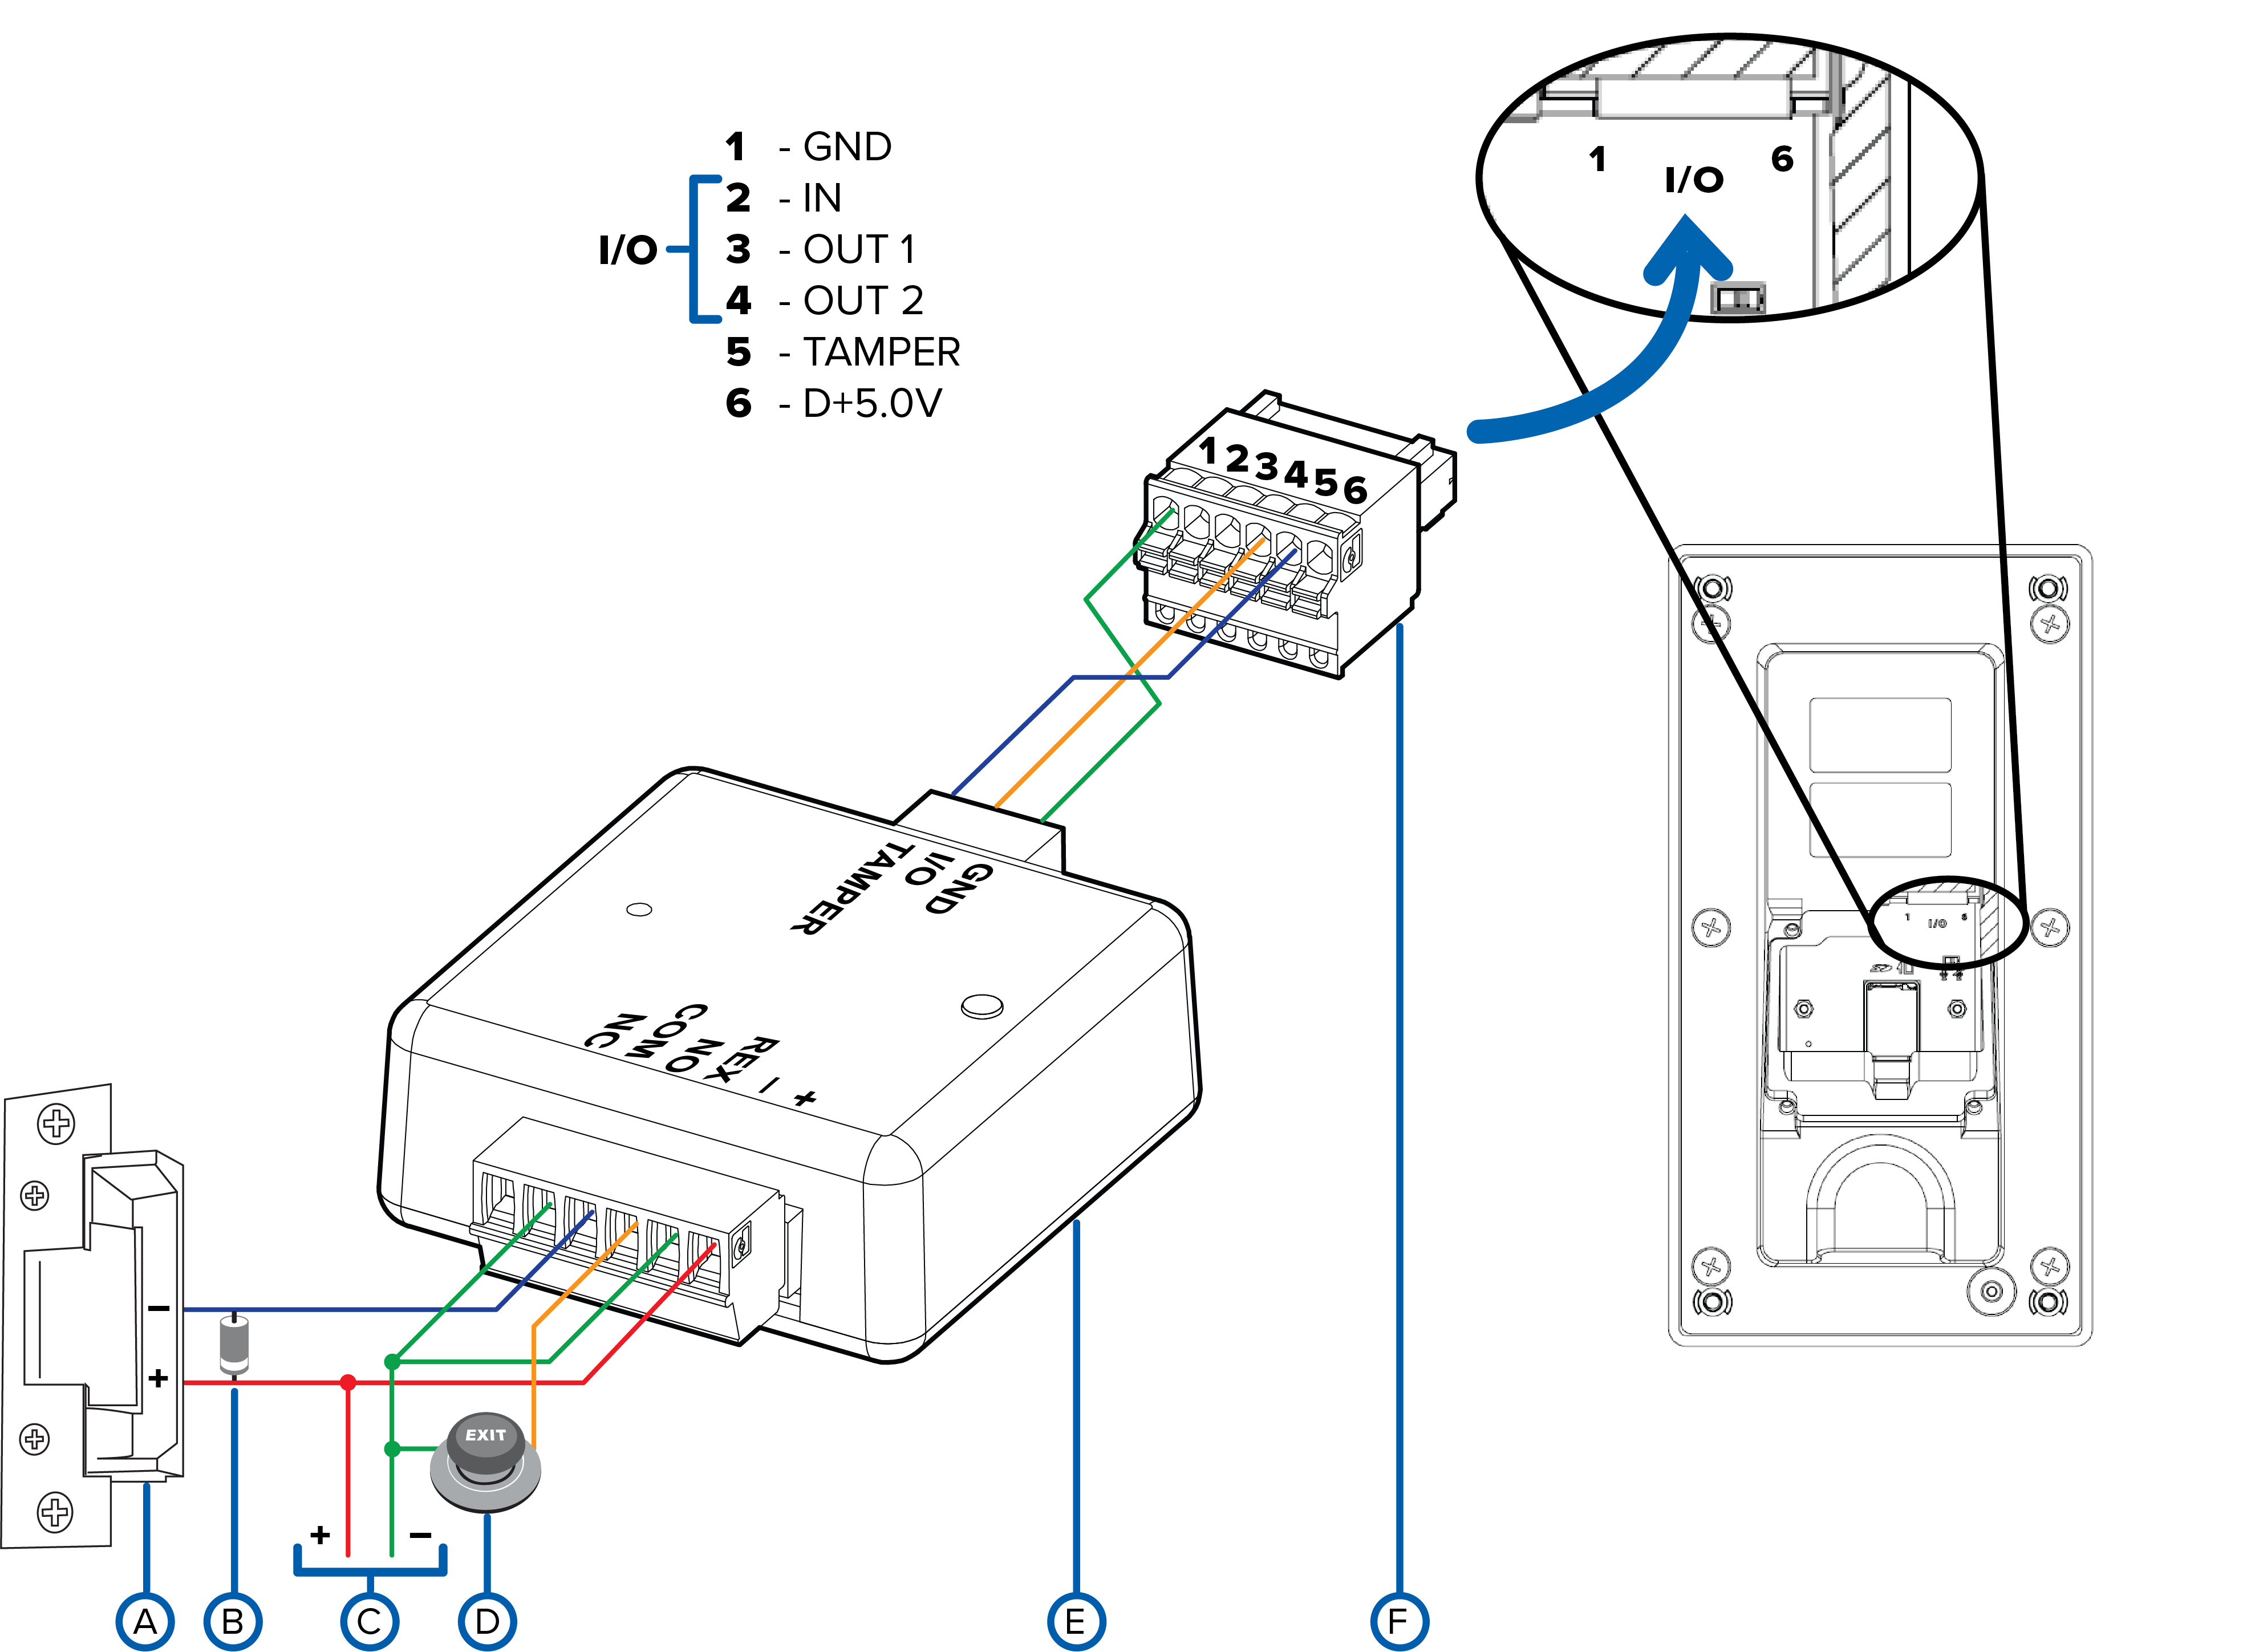 Wiring For A Fail Secure Configuration